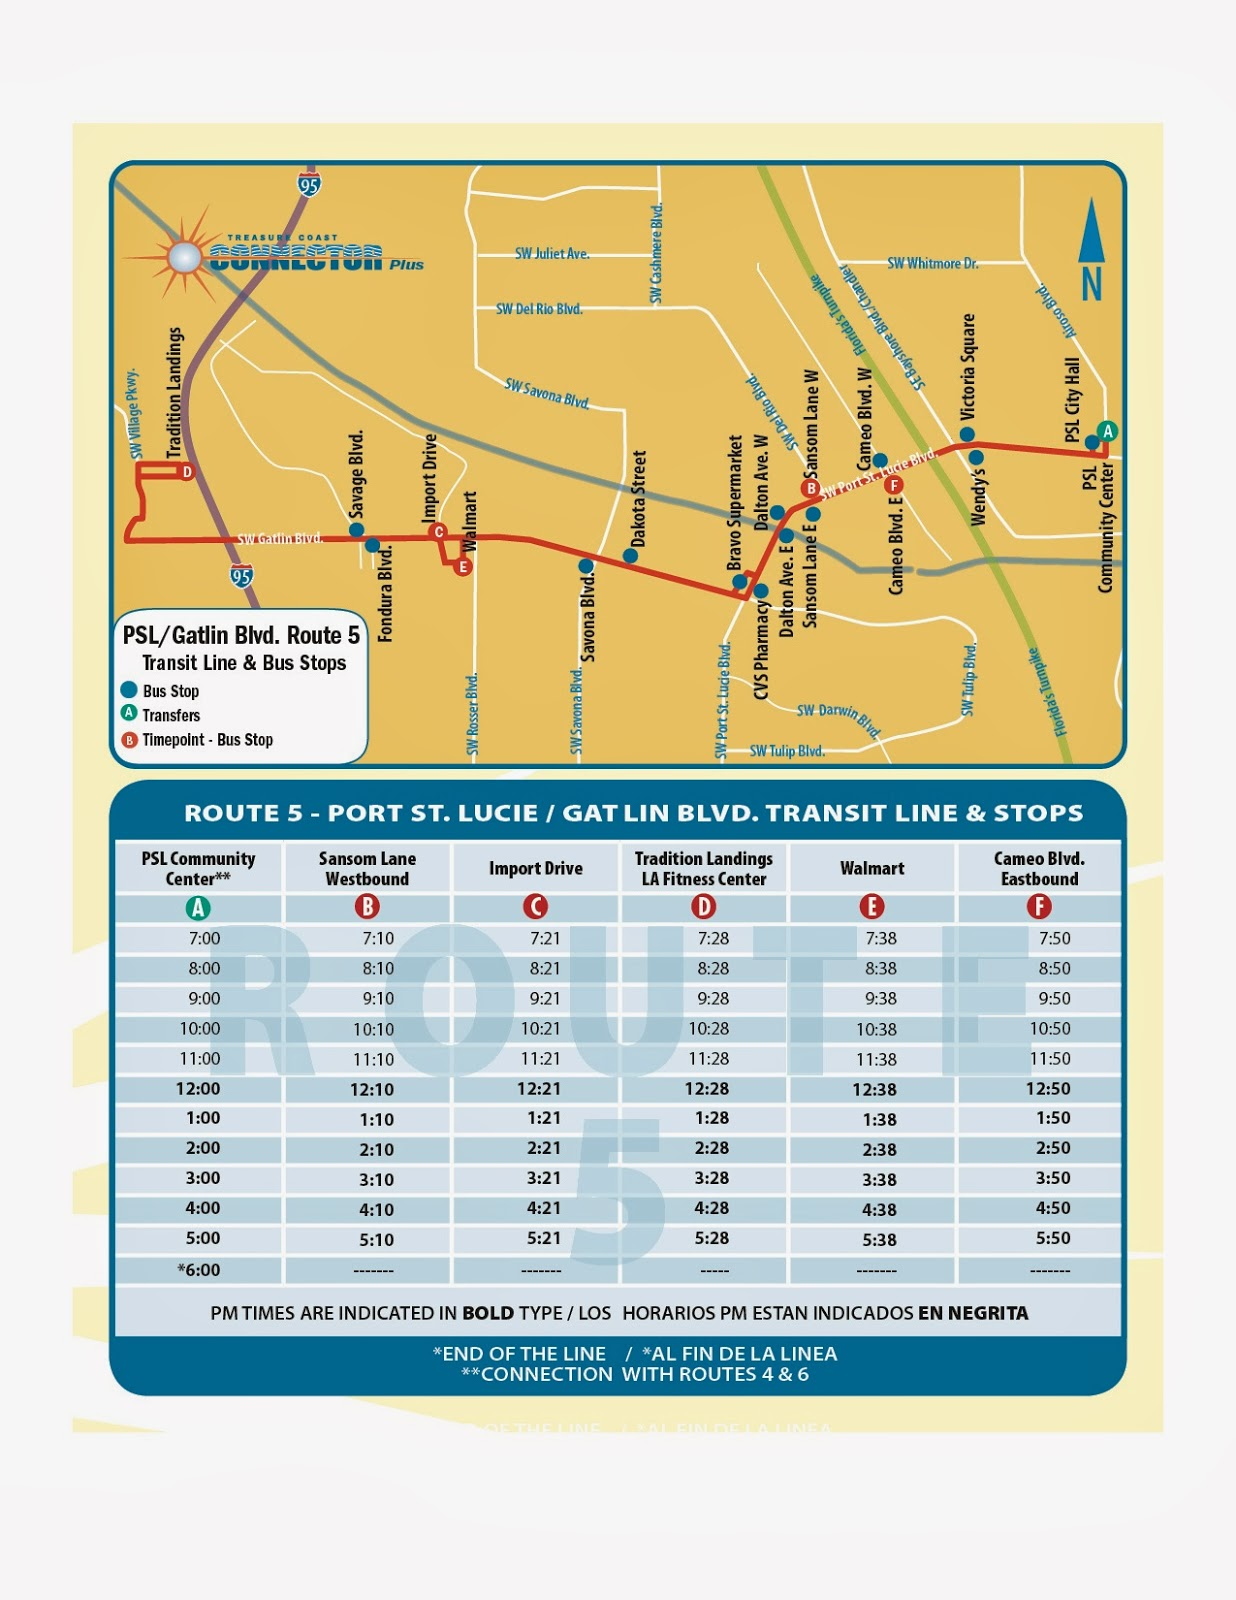 treasure coast connector route 5 map and timetable